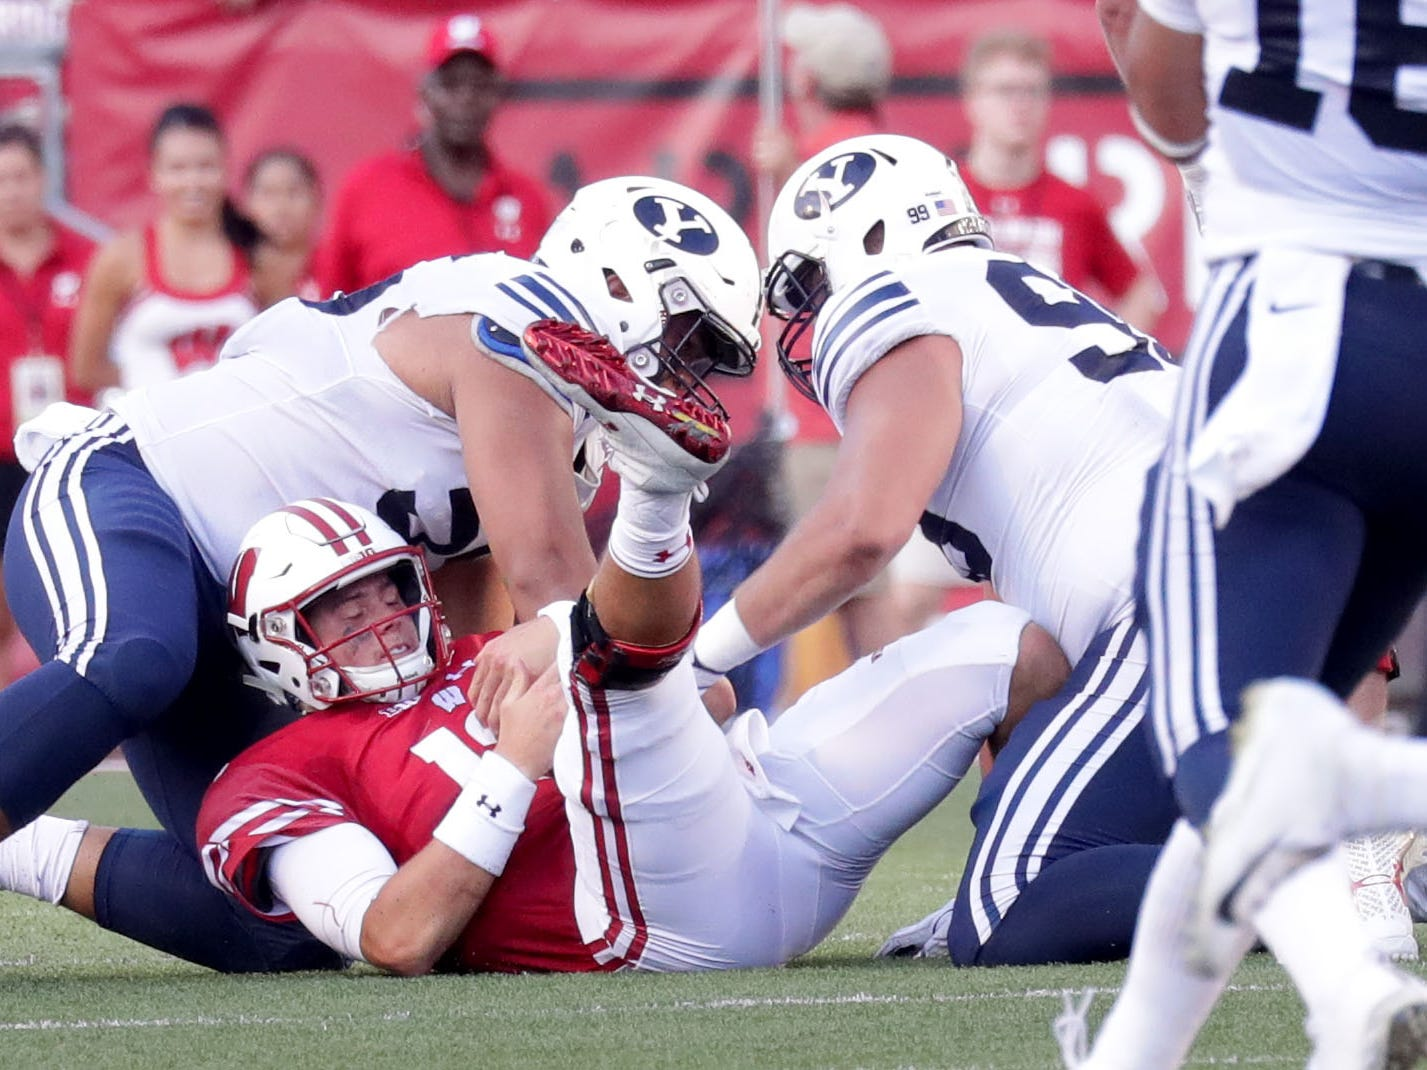 Wisconsin Badgers quarterback Alex Hornibrook is sacked by Brigham Young defensive lineman Uriah Leiataua (58) and defensive lineman Earl Tuioti-Mariner (91).